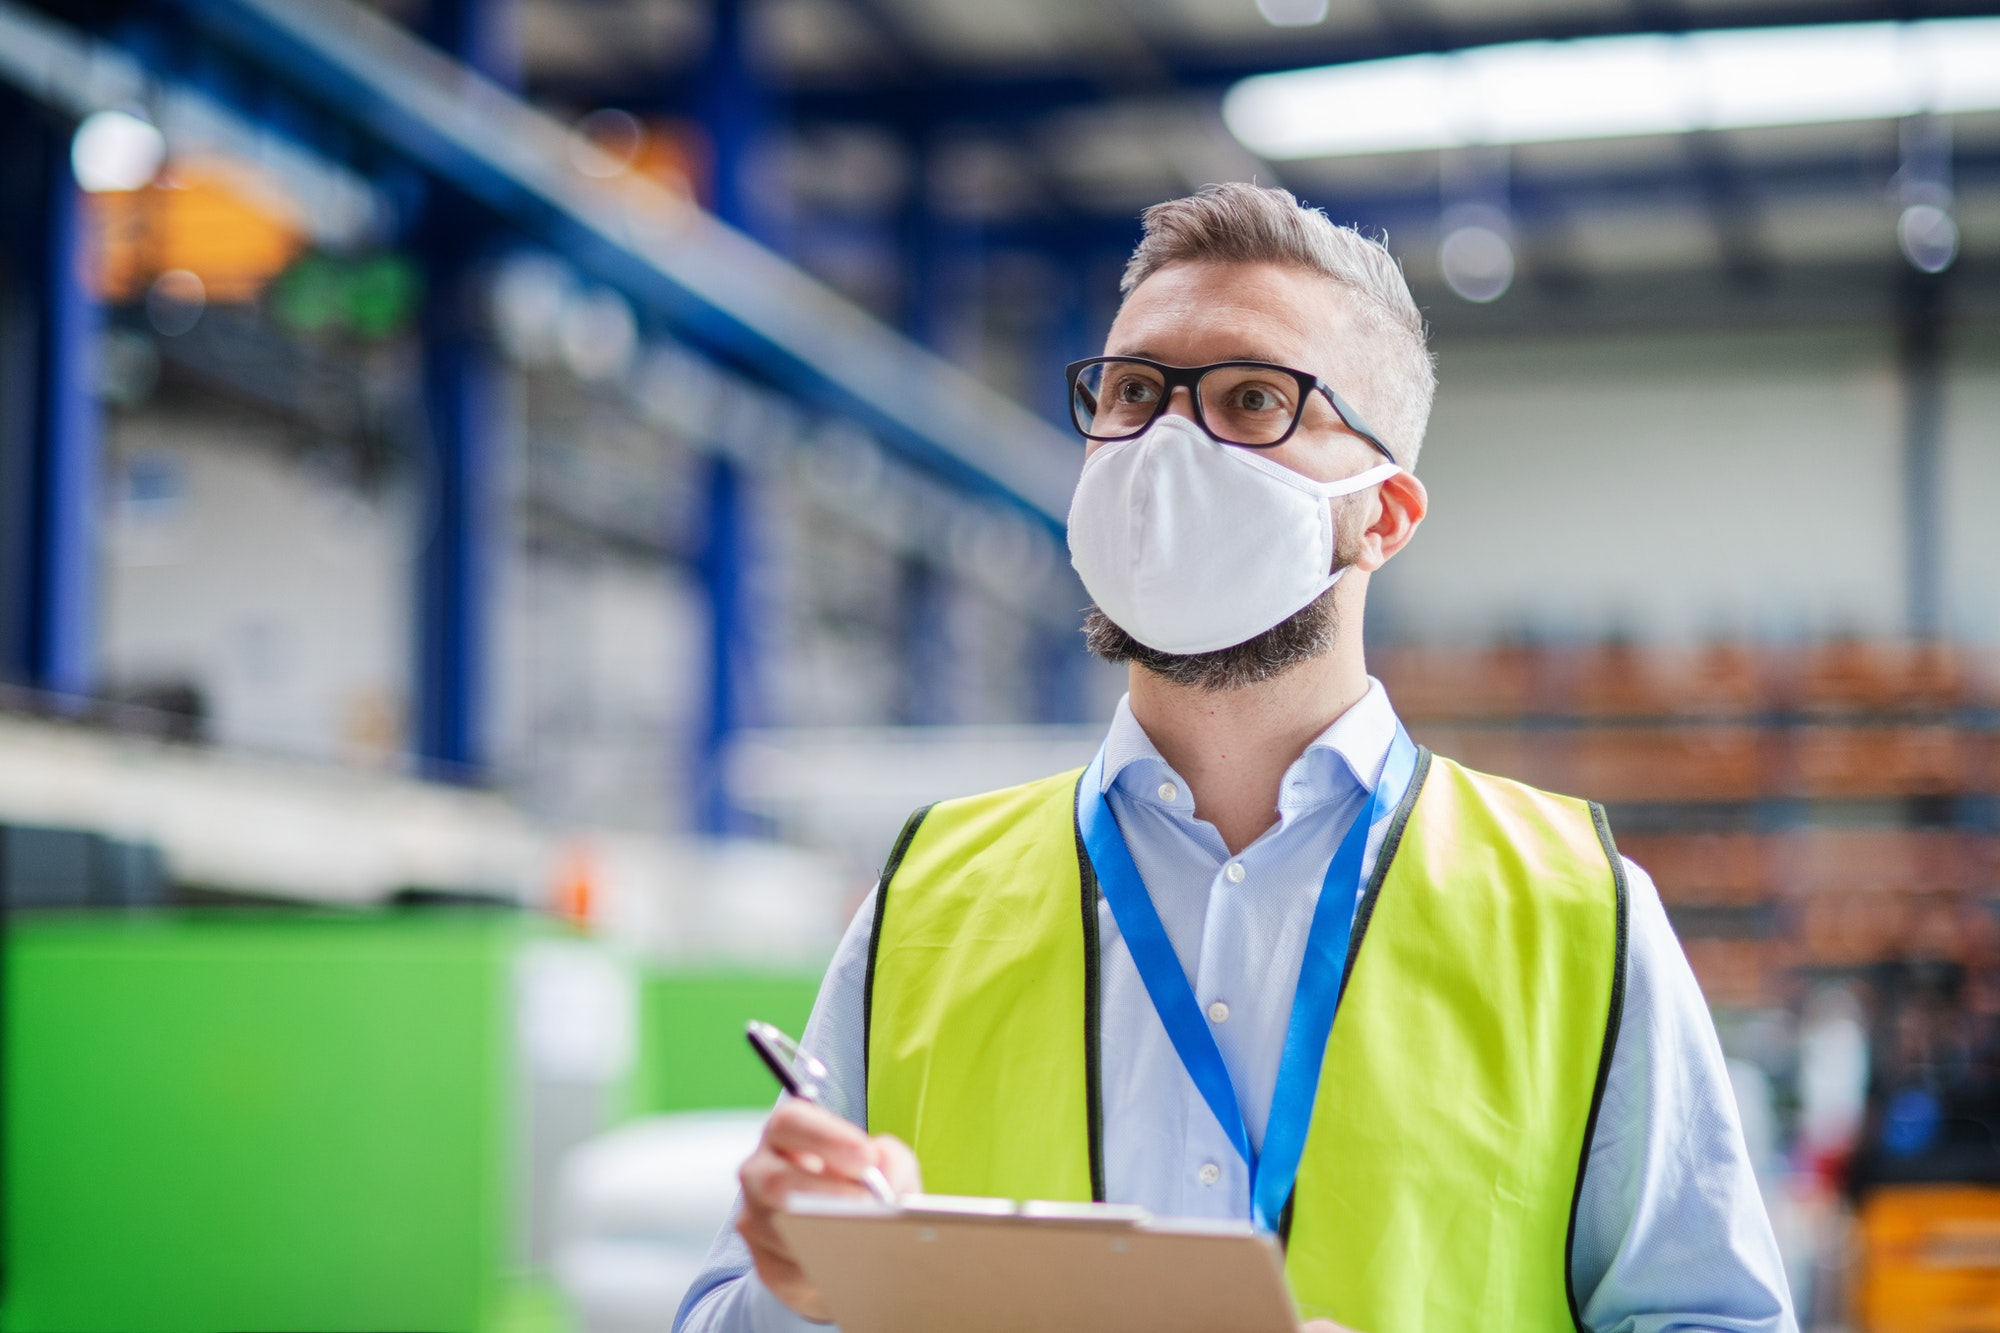 Technician or engineer with protective mask working in industrial factory, walking